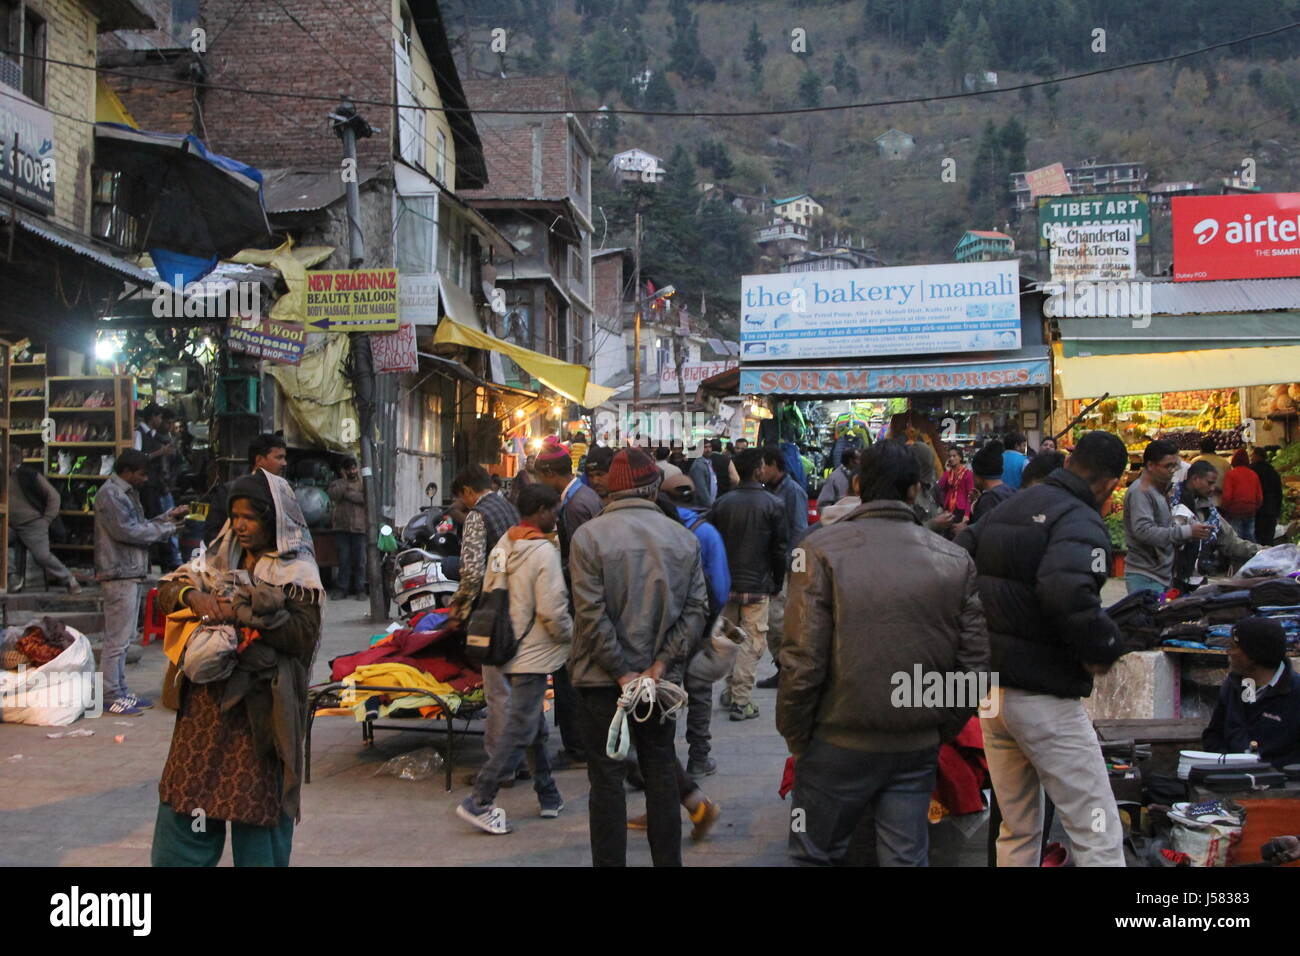 Street market in Manali, Himachal Pradesh, north India. - Stock Image